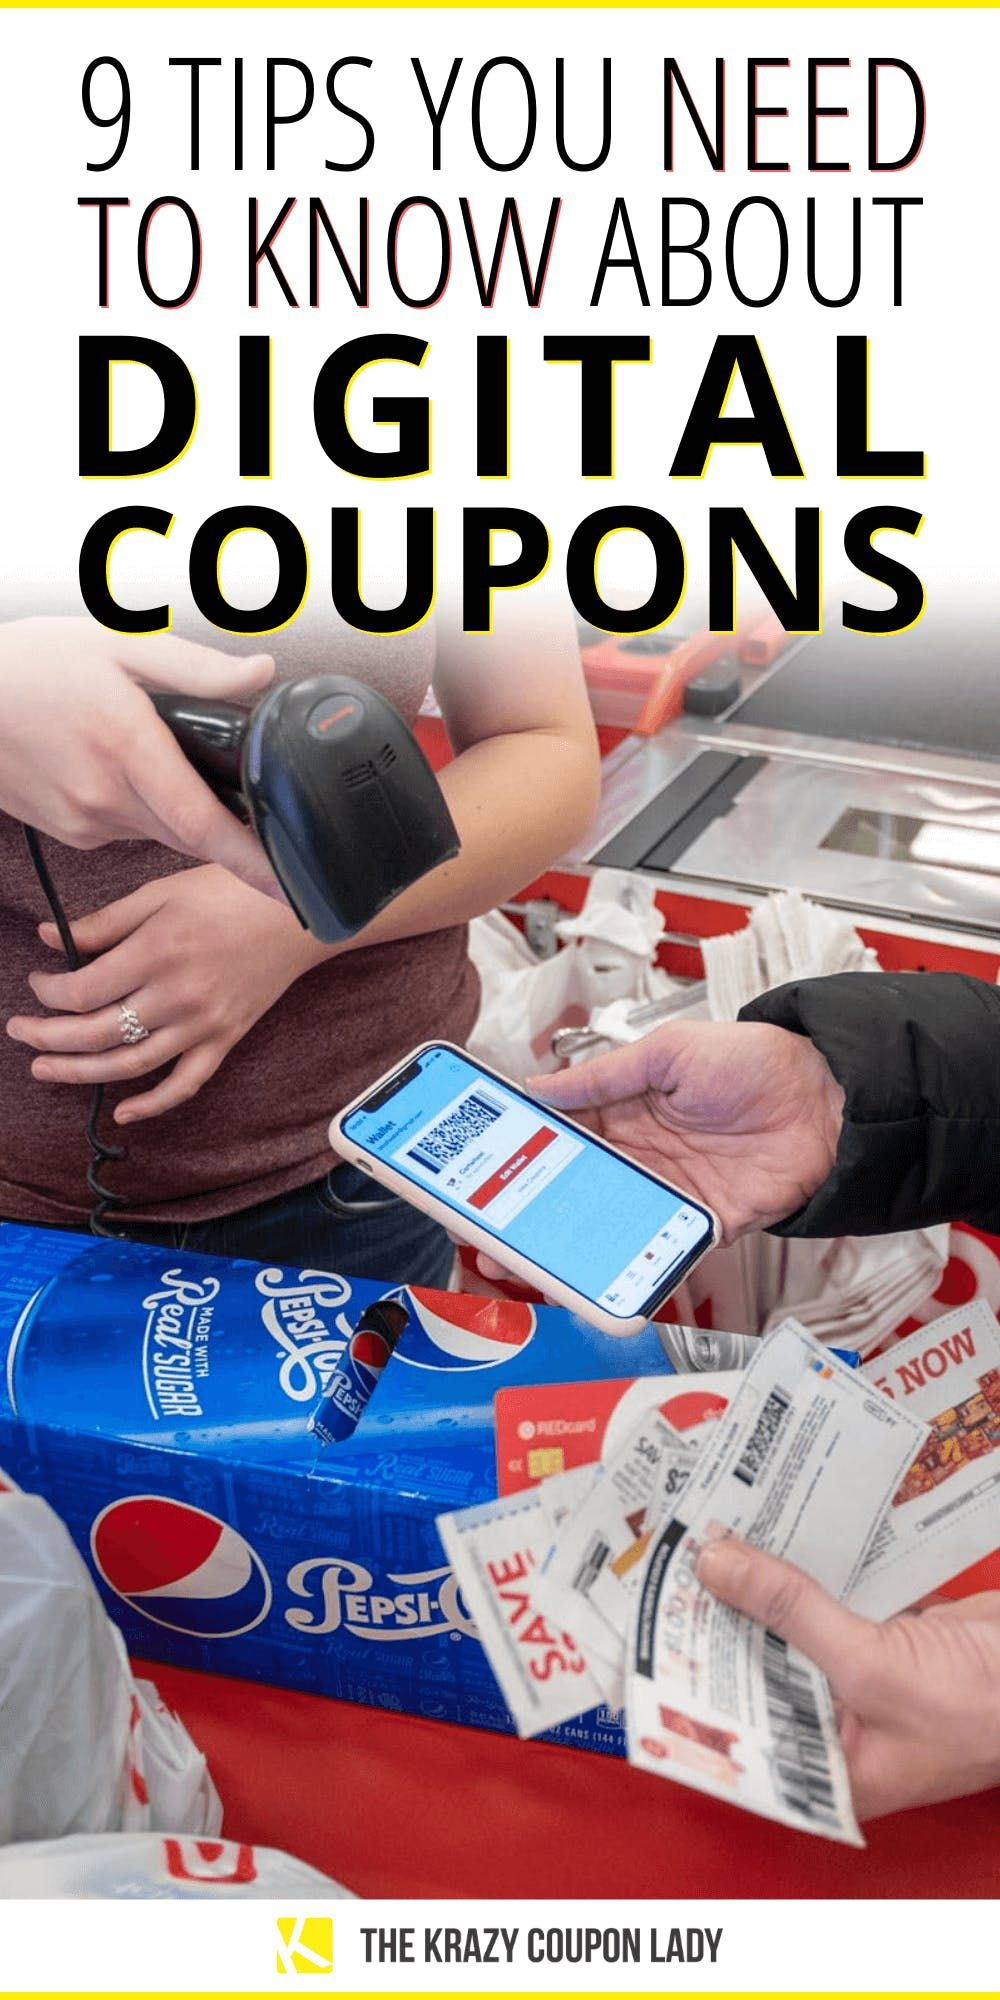 9 Things You Need To Know About Using Digital Coupons In 2021 Digital Coupons Couponing For Beginners Best Money Saving Tips